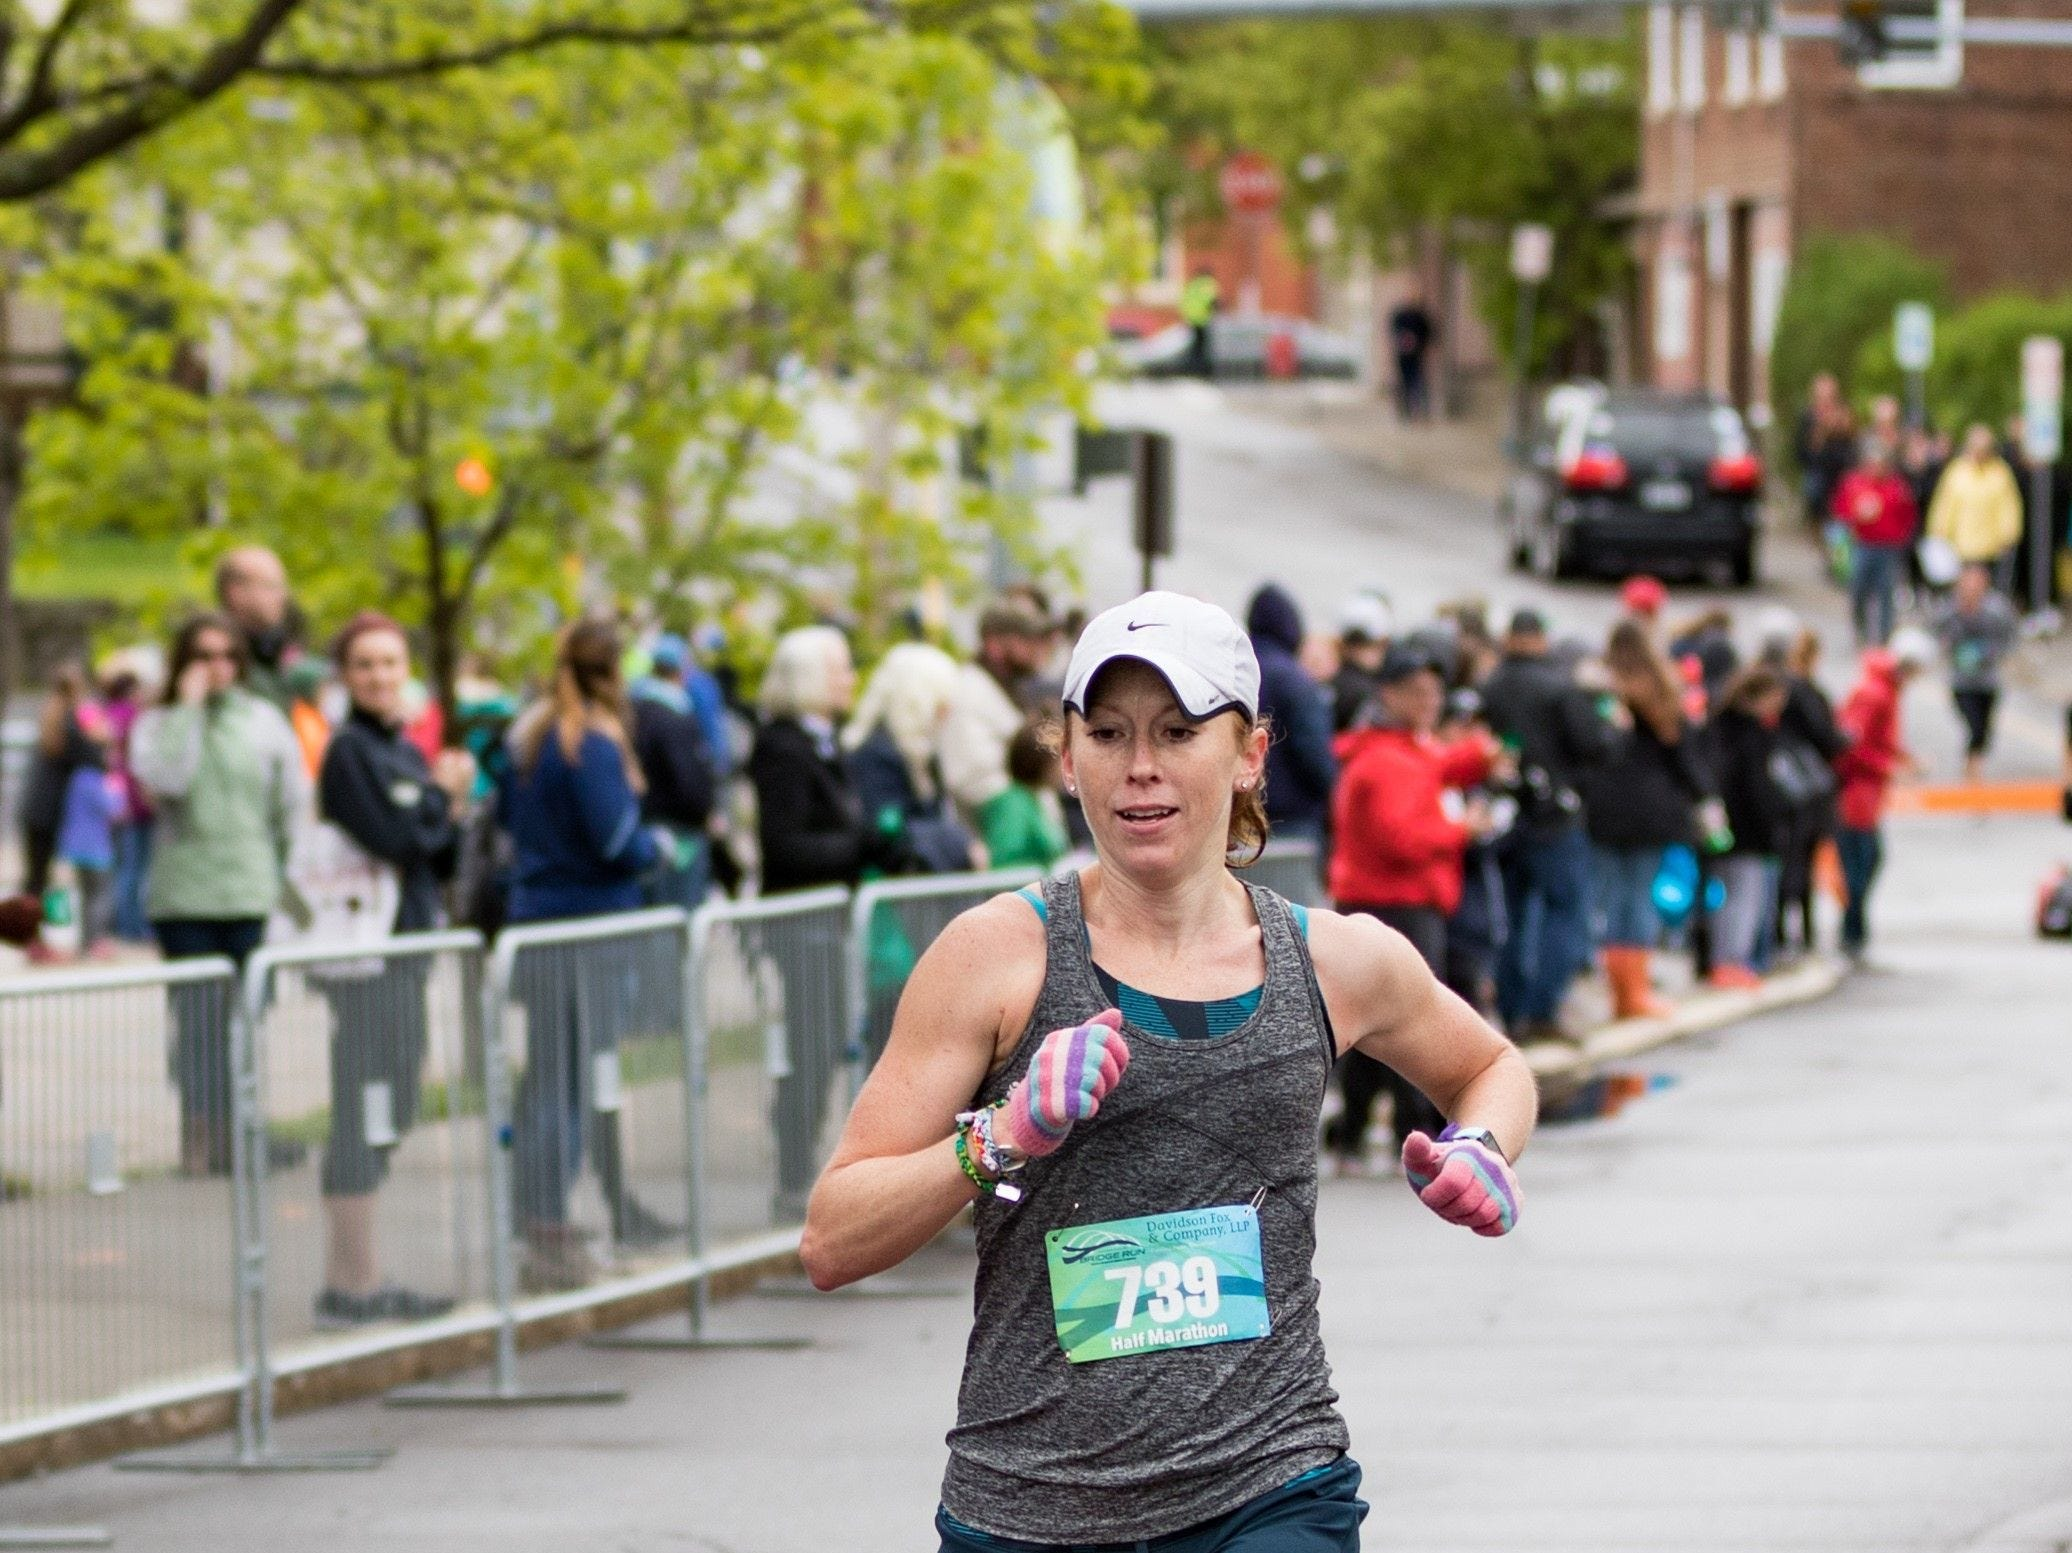 2017: Pine City's Hollie Hughes, 34, was the top female finisher with a time of 1:25:52 in Sunday's Binghamton Bridge Run. Hughes was the 16th overall finisher, male or female.